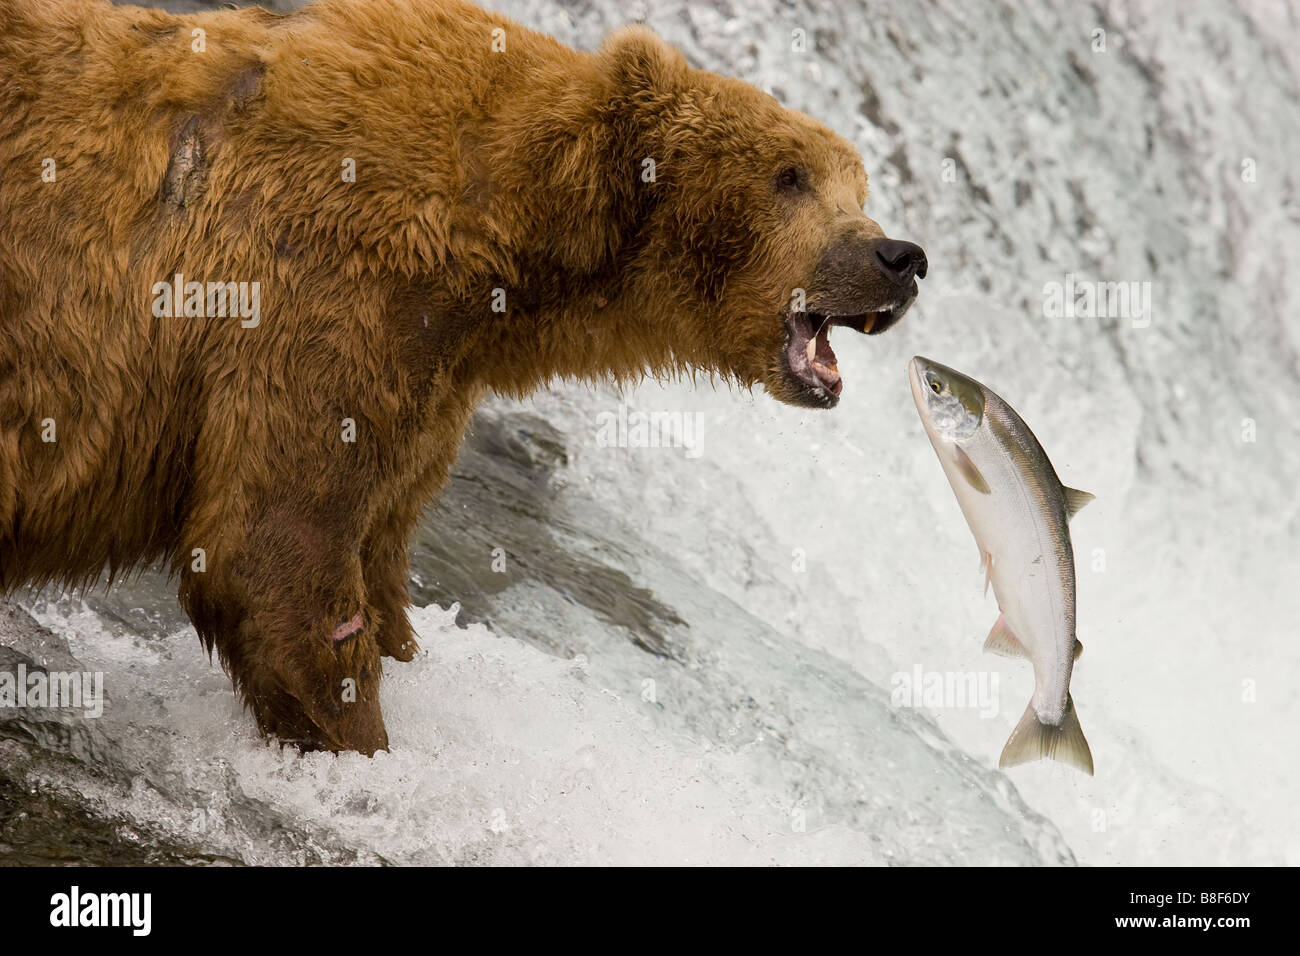 Brown Grizzly Bear Ursus arctos horribilis Katmai National Park Alaska - Stock Image